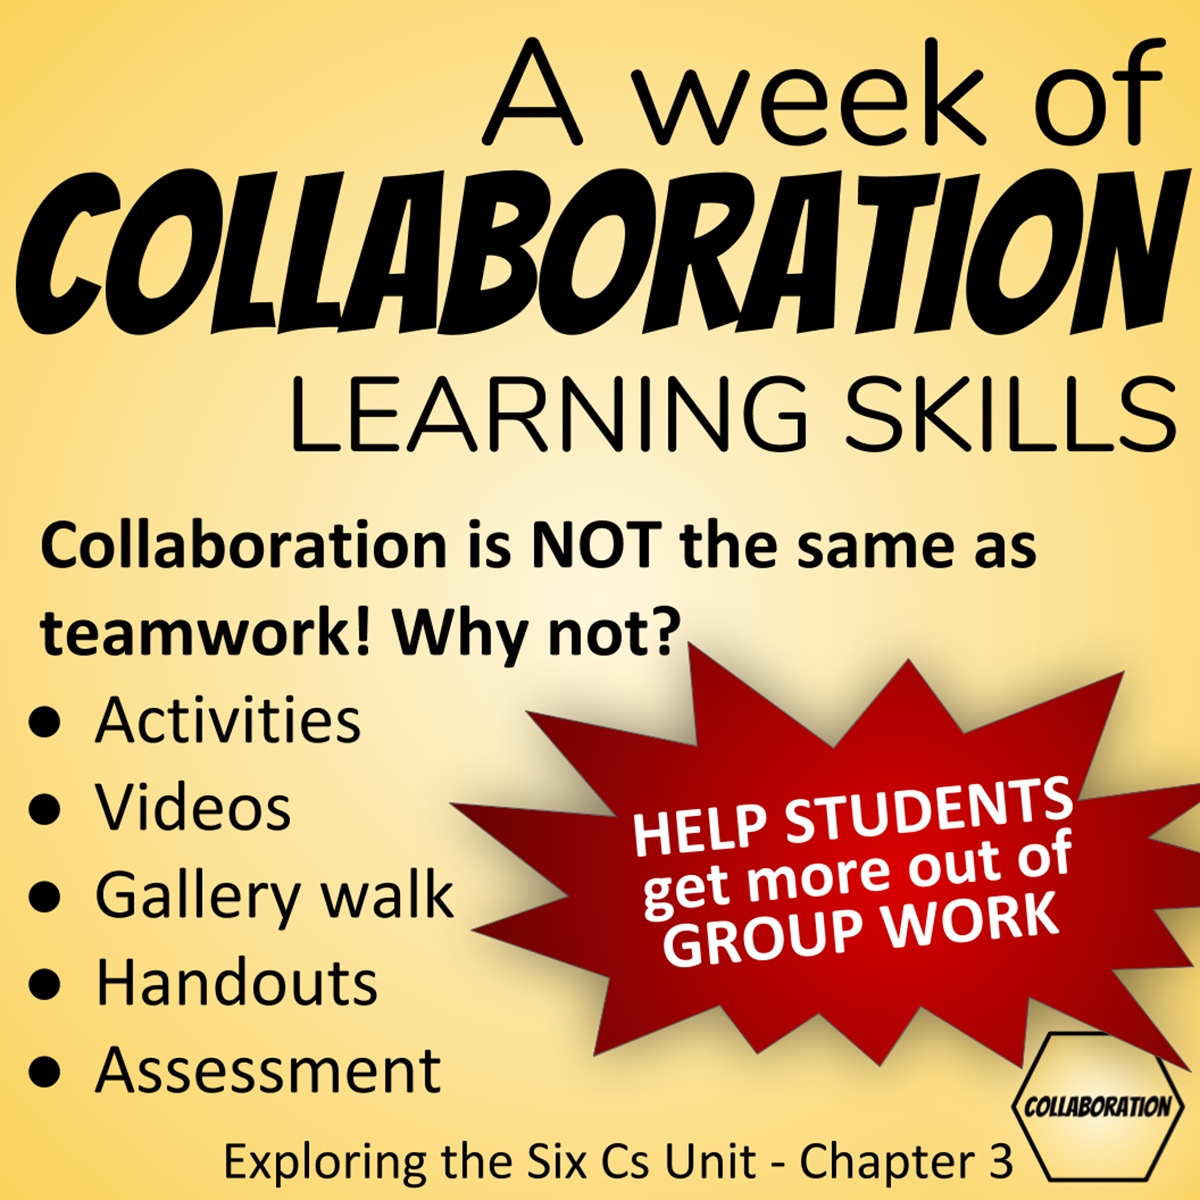 A week of Collaboration Learning Skills: Collaboration is NOT the same as teamwork! Why not? Activities, Videos, Gallery Walk, Handouts, Assessment: Help students get more out of group work